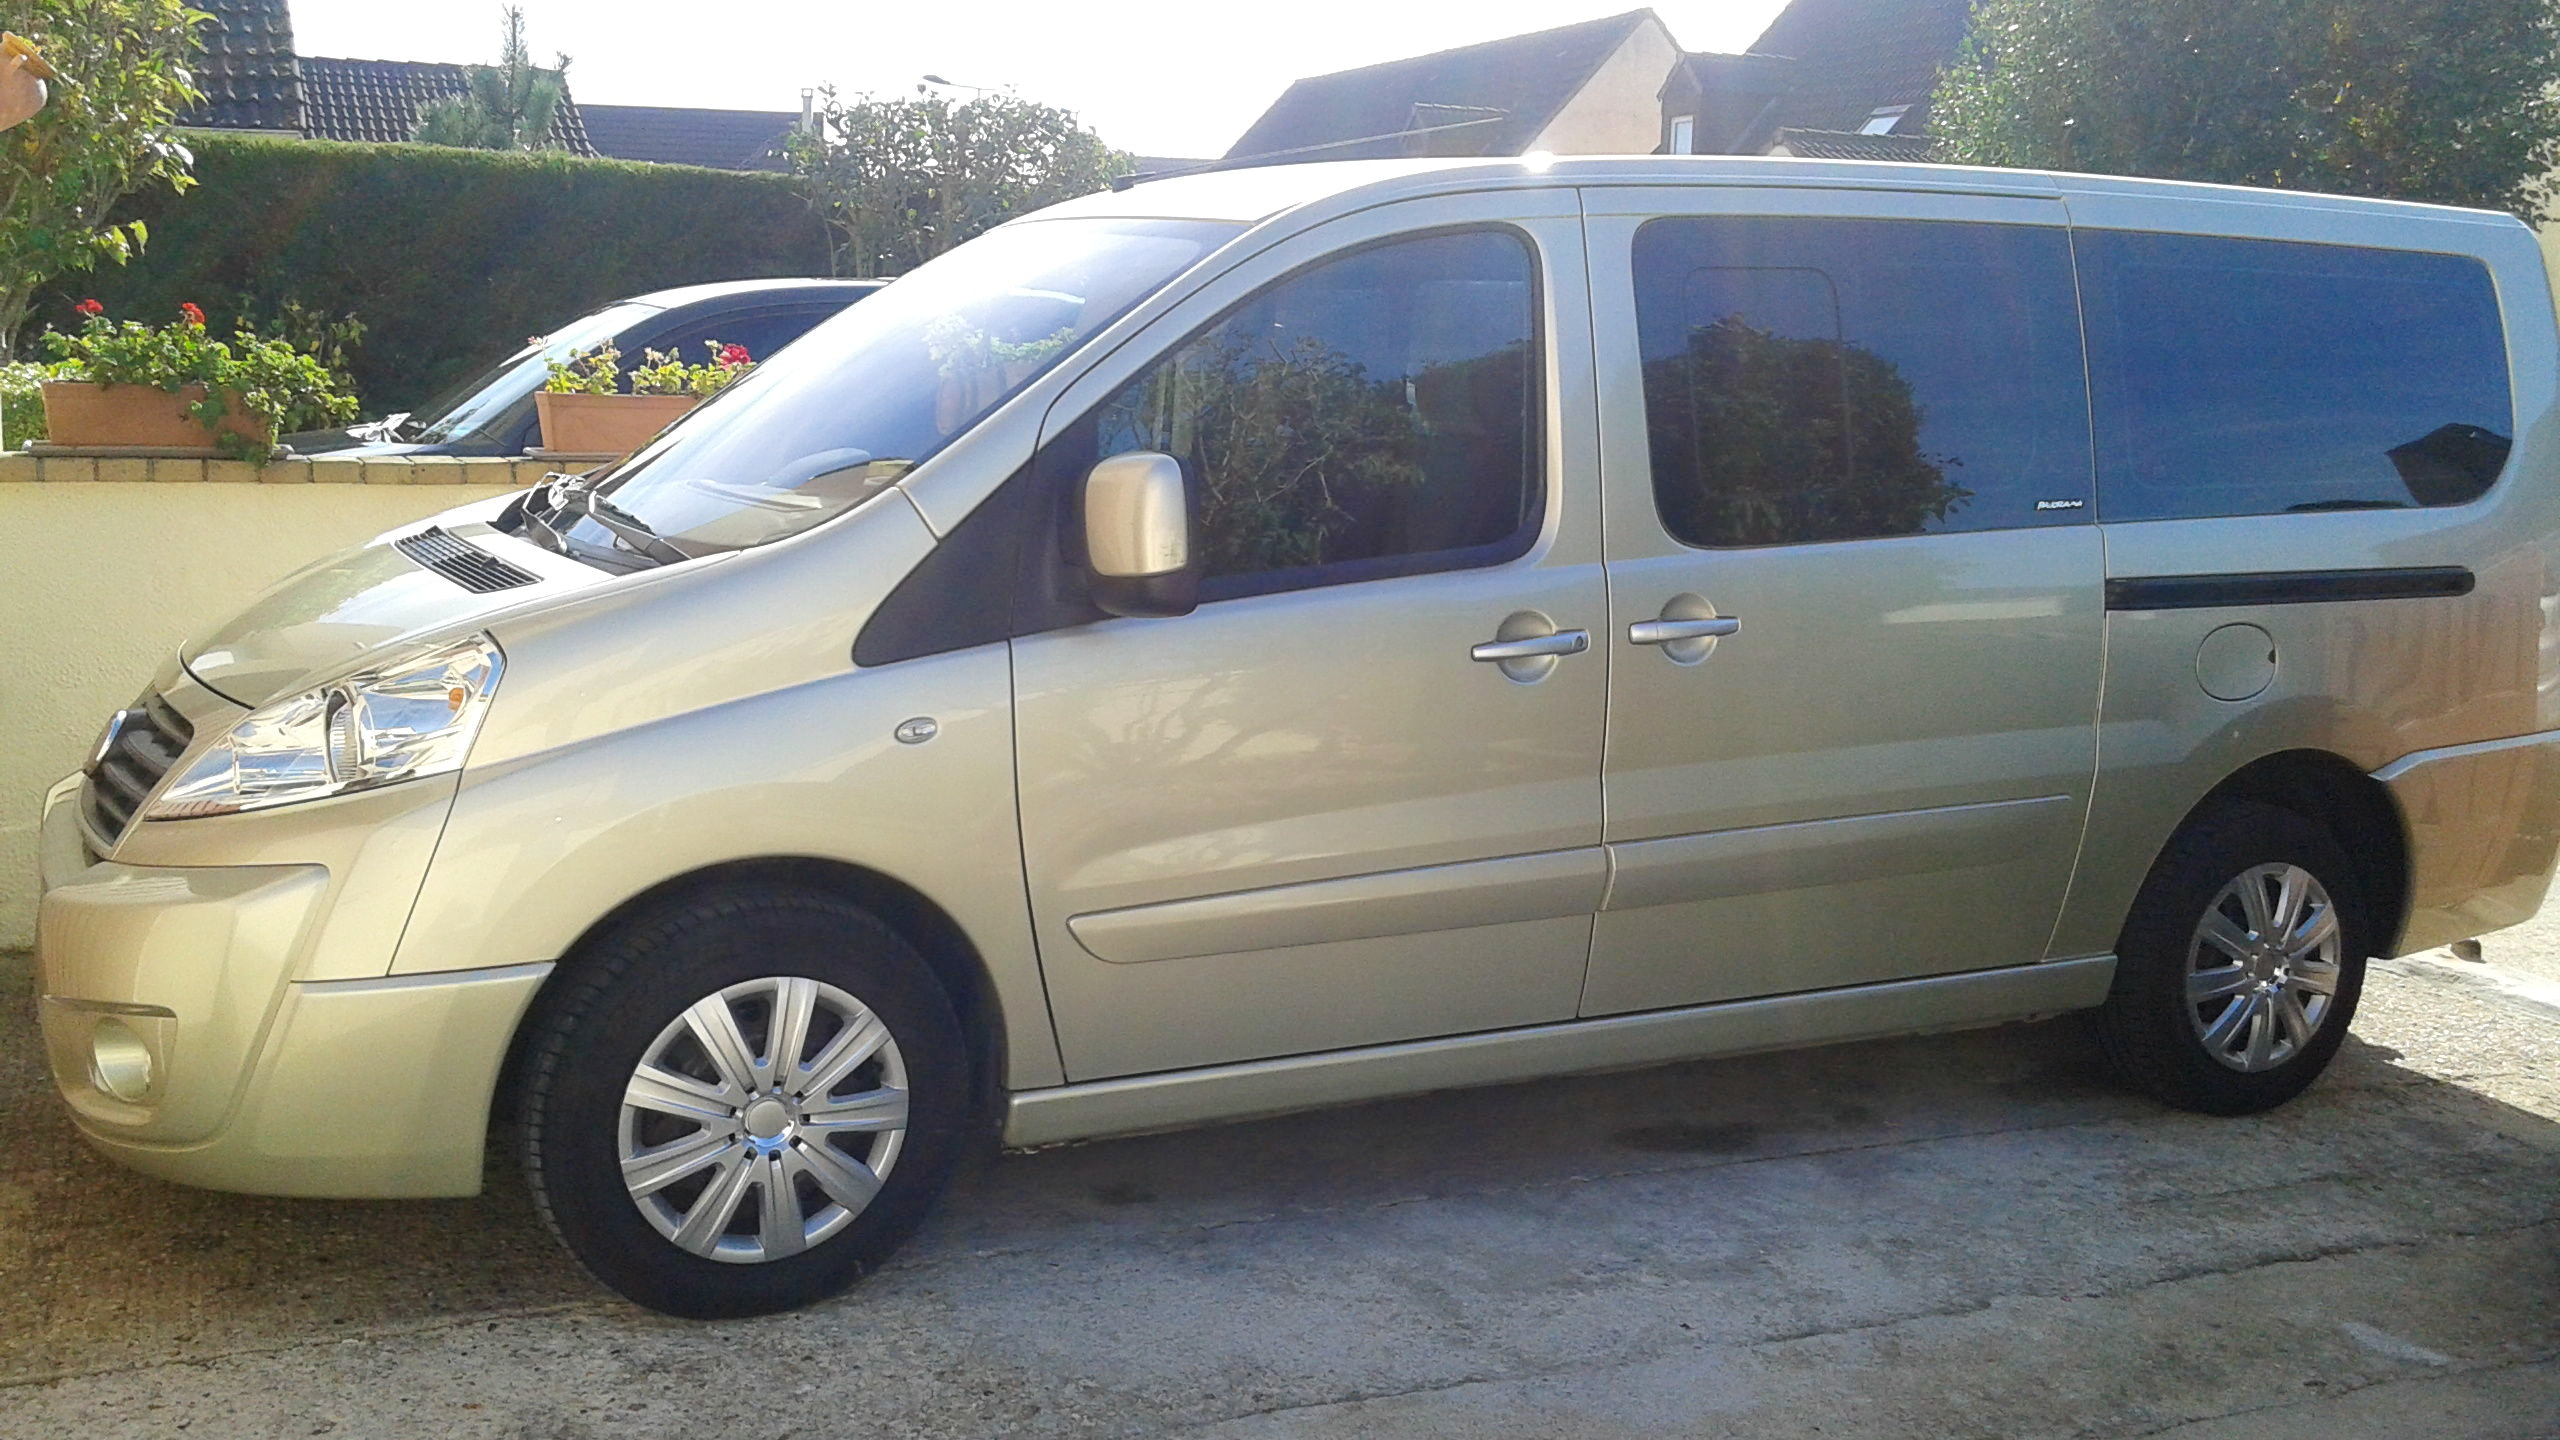 Fiat scudo panorama, 2009, Diesel, 9 places et plus